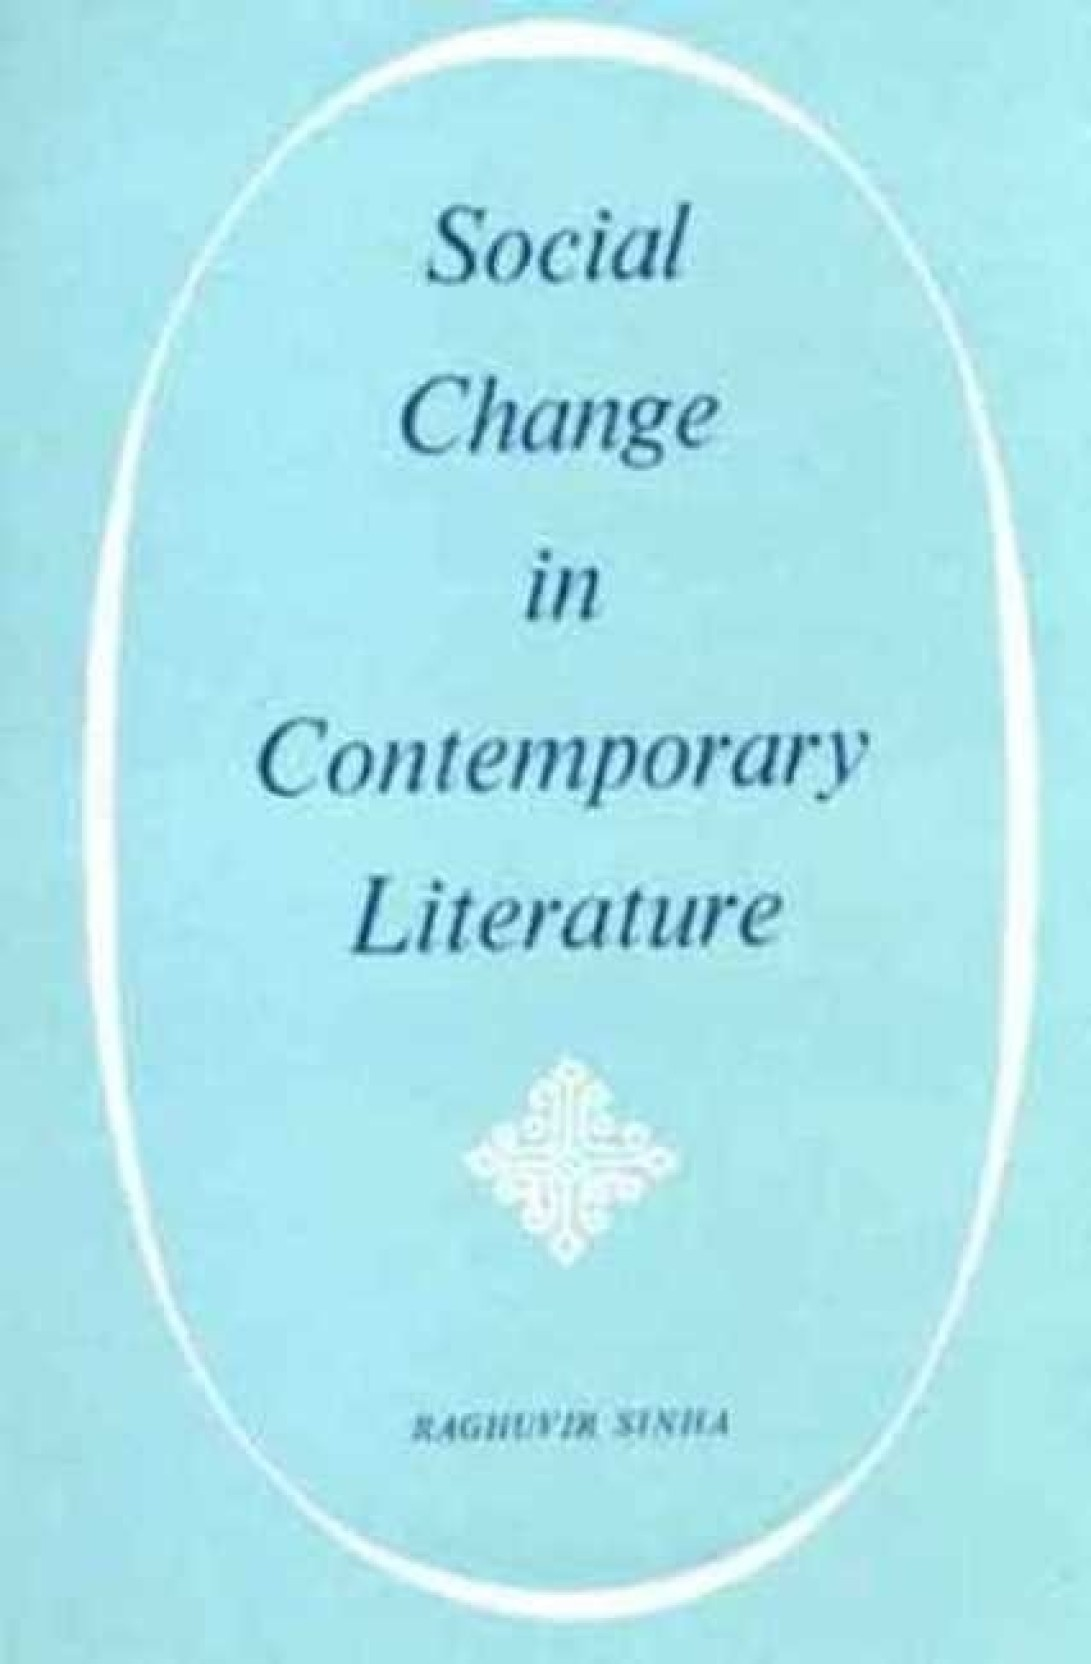 literature and social change